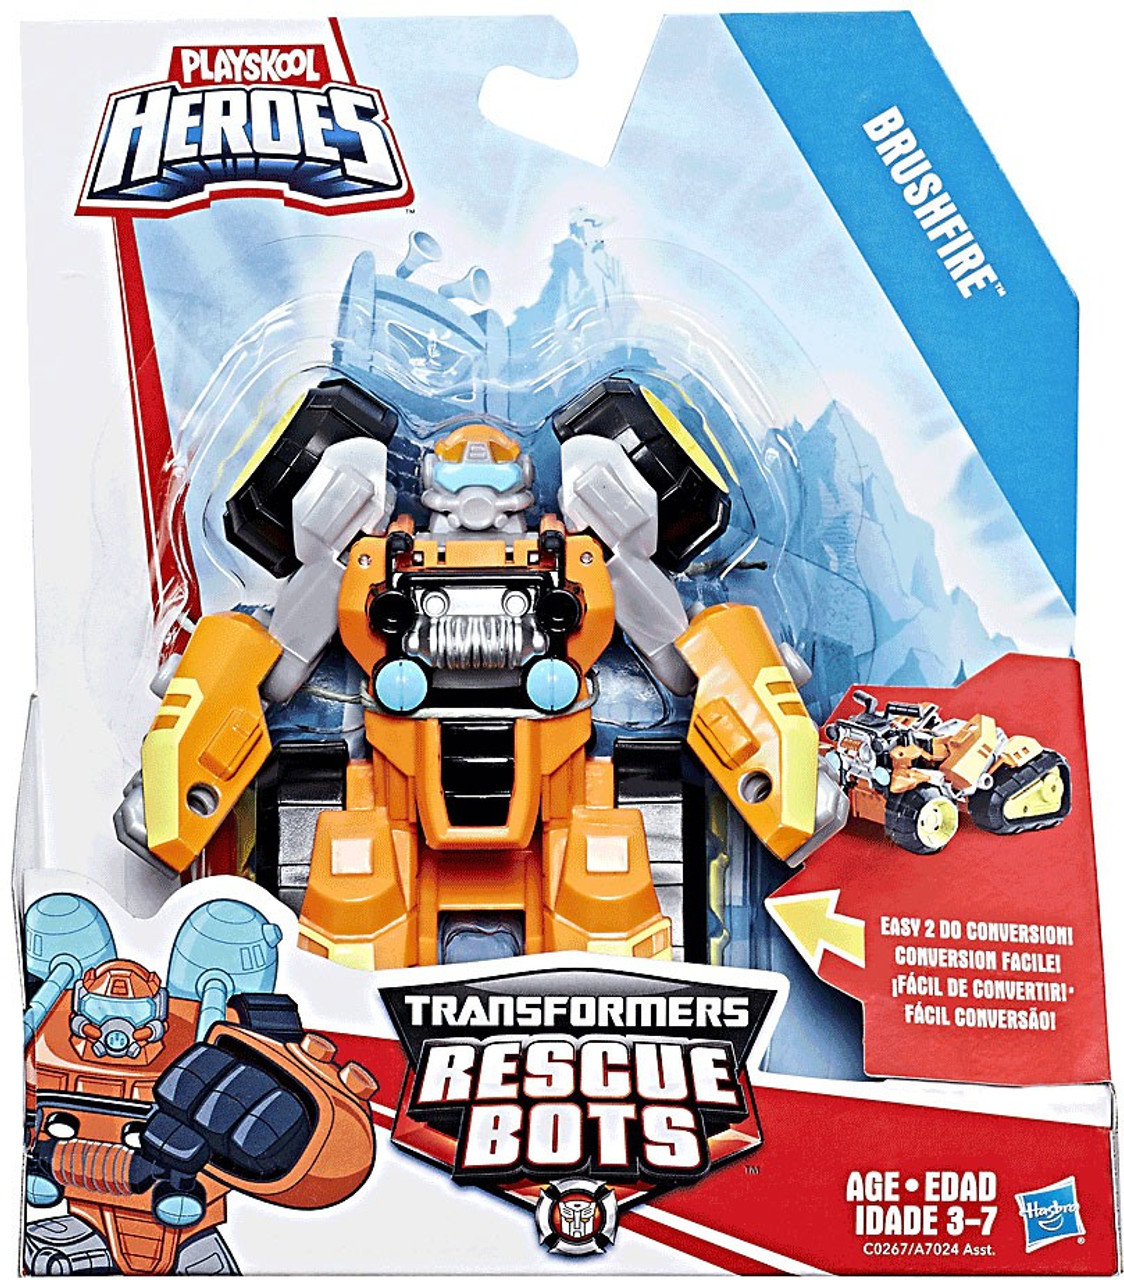 Transformers Rescue Bots Playskool Heroes Brushfire Action Figure